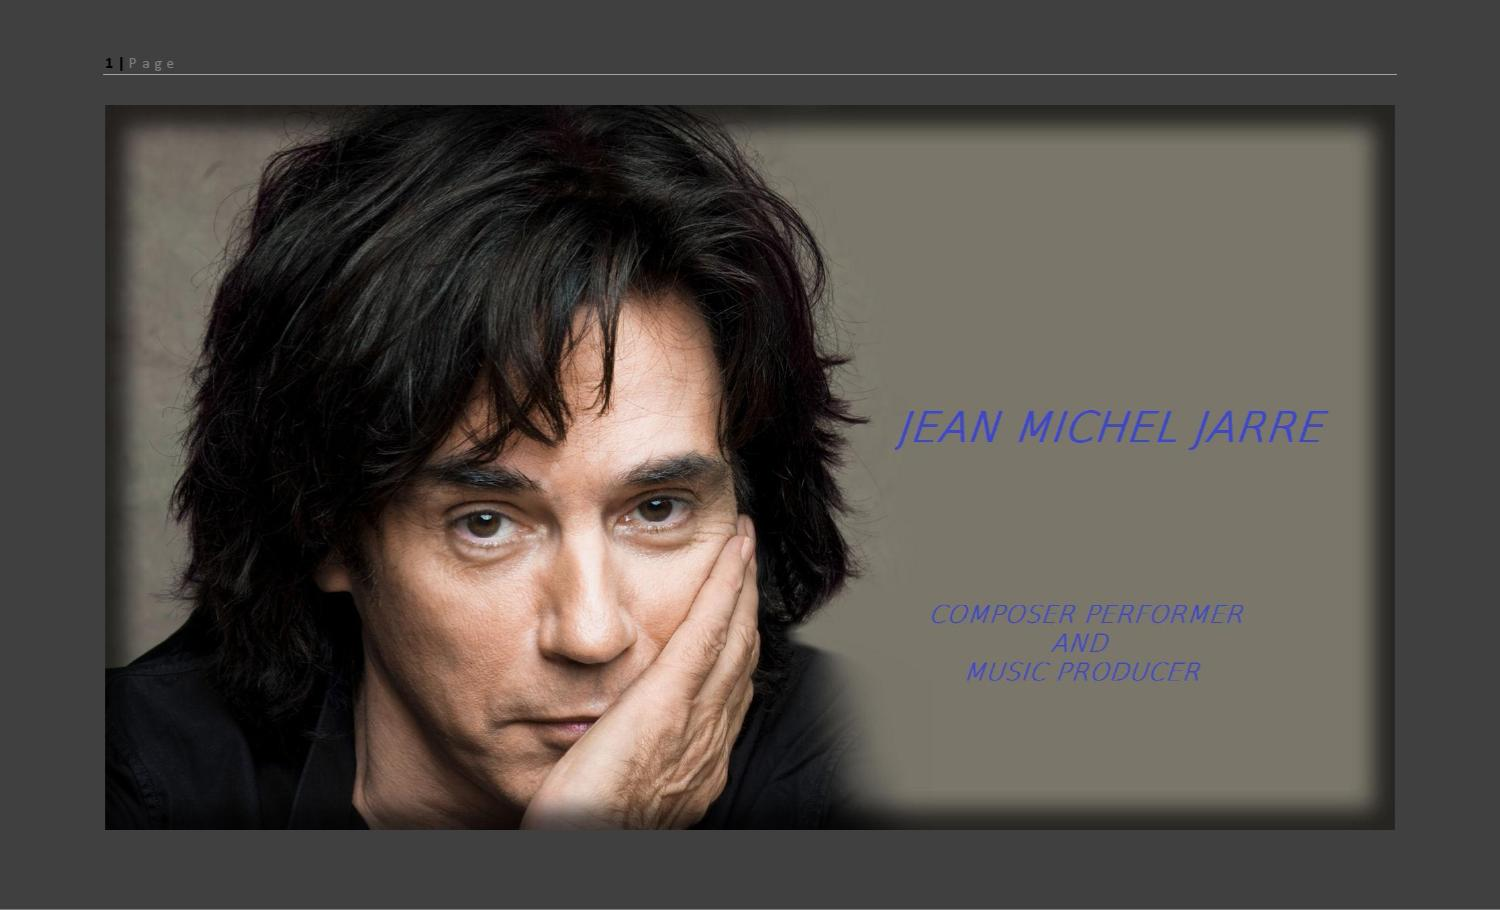 Jean Michel Jarre Composer Performer And Music Producer